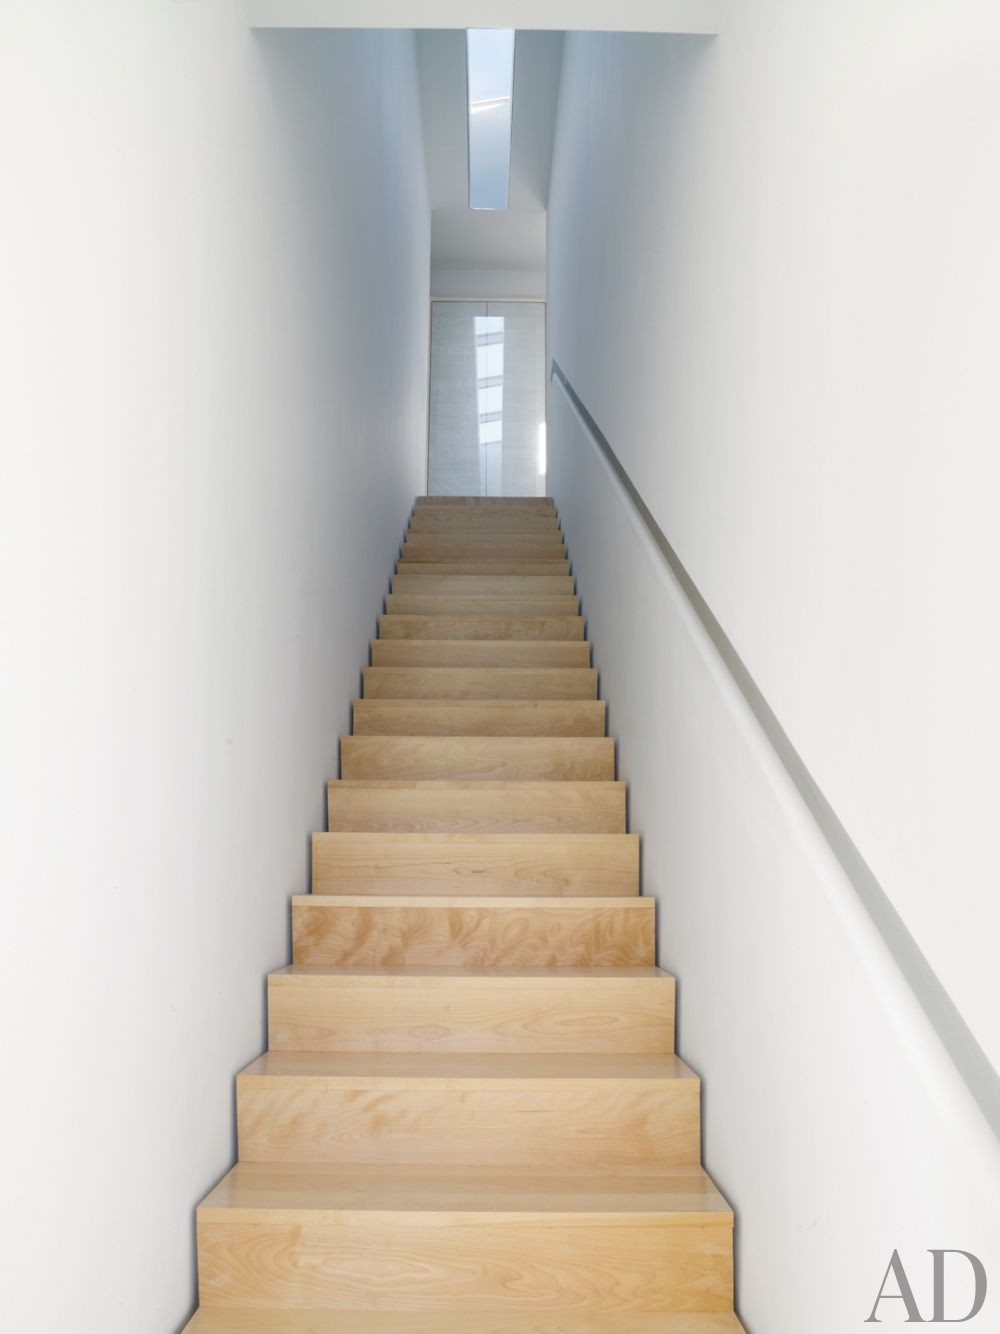 Contemporary Staircase/Hallway by Toshiko Mori Architect in Hudson Valley, New York